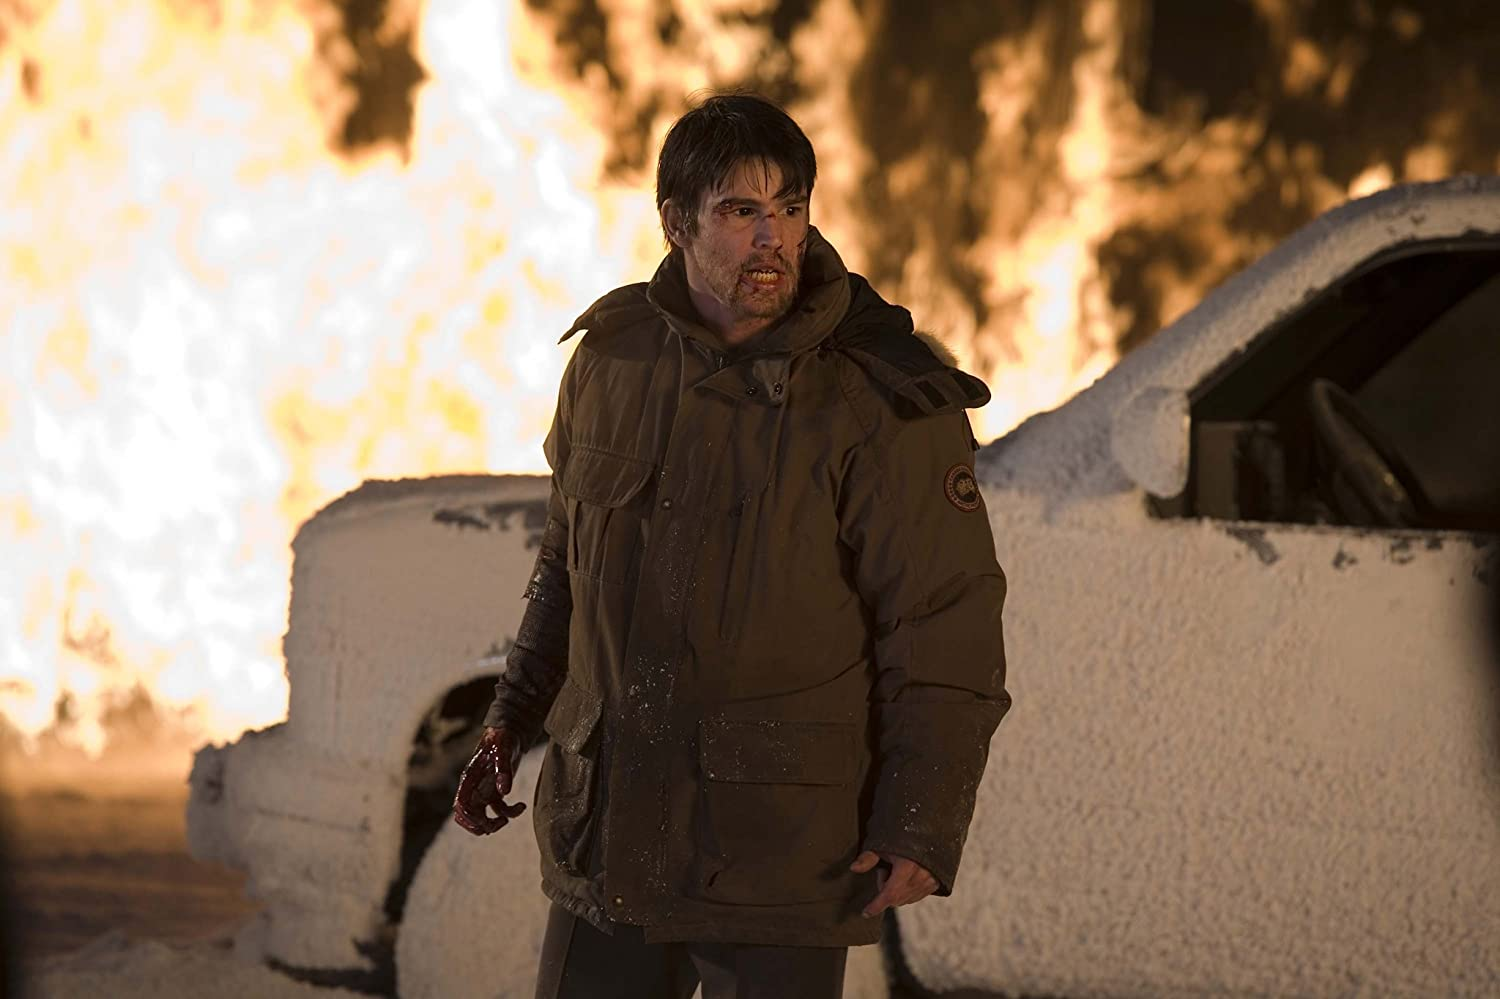 Main character Eben with fire behind him, he has black eyes from turning into a vampire